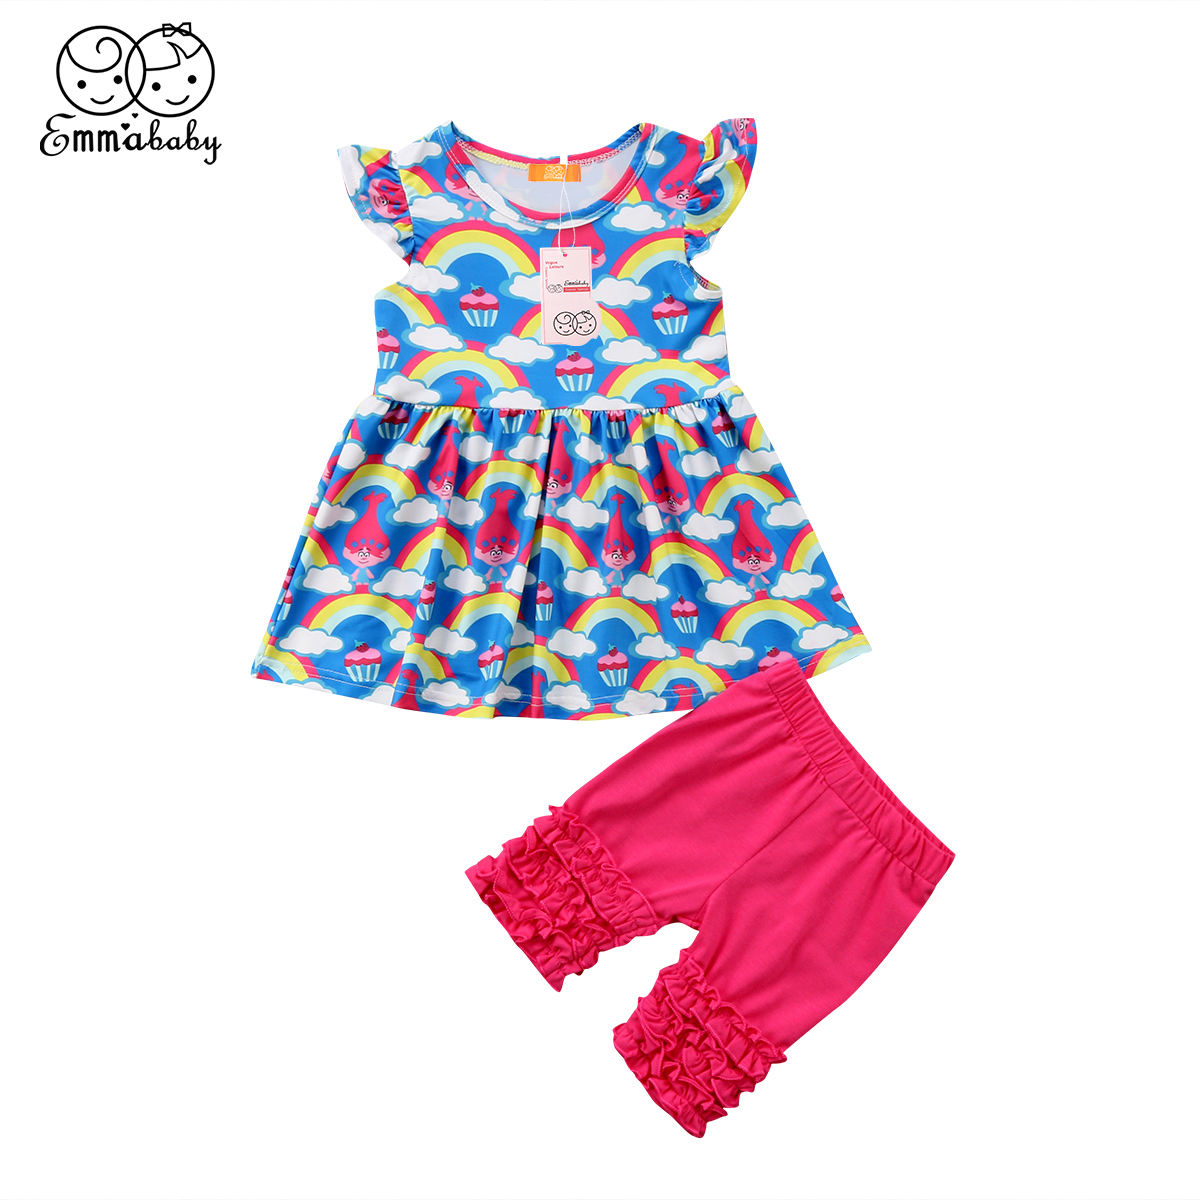 2018 new cute Rainbow outfit set 2pcs Newborn Toddler Baby Girls Cartoon ruffles Tutu Dress Tops+short Pants Outfits Clothes set fashion 2pcs set newborn baby girls jumpsuit toddler girls flower pattern outfit clothes romper bodysuit pants